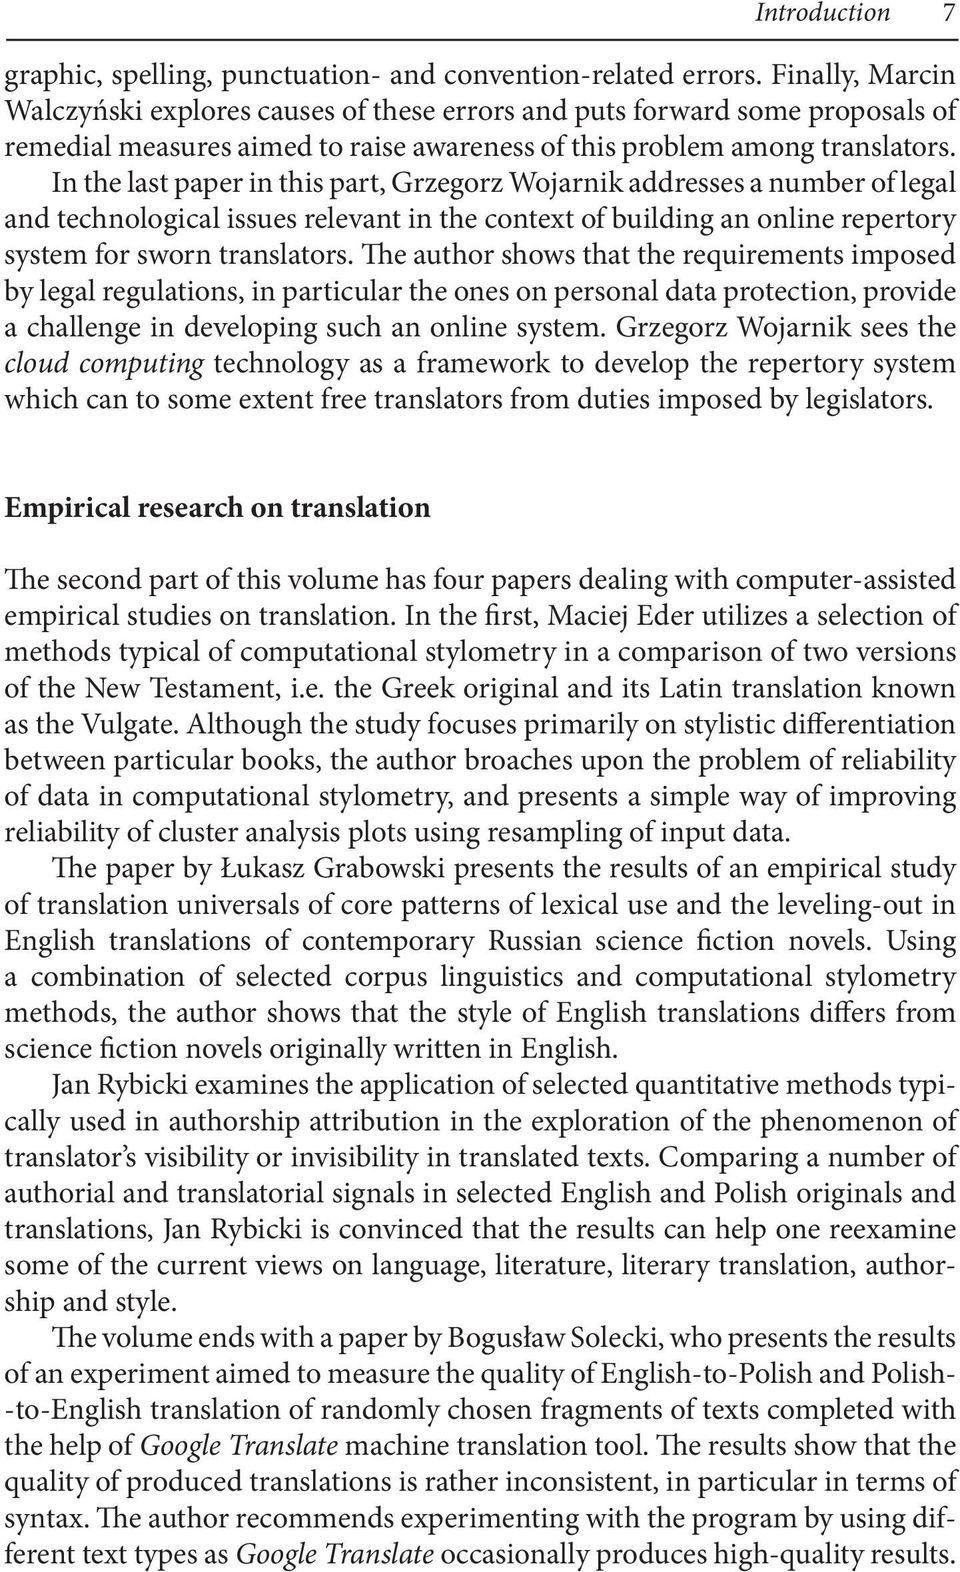 In the last paper in this part, Grzegorz Wojarnik addresses a number of legal and technological issues relevant in the context of building an online repertory system for sworn translators.